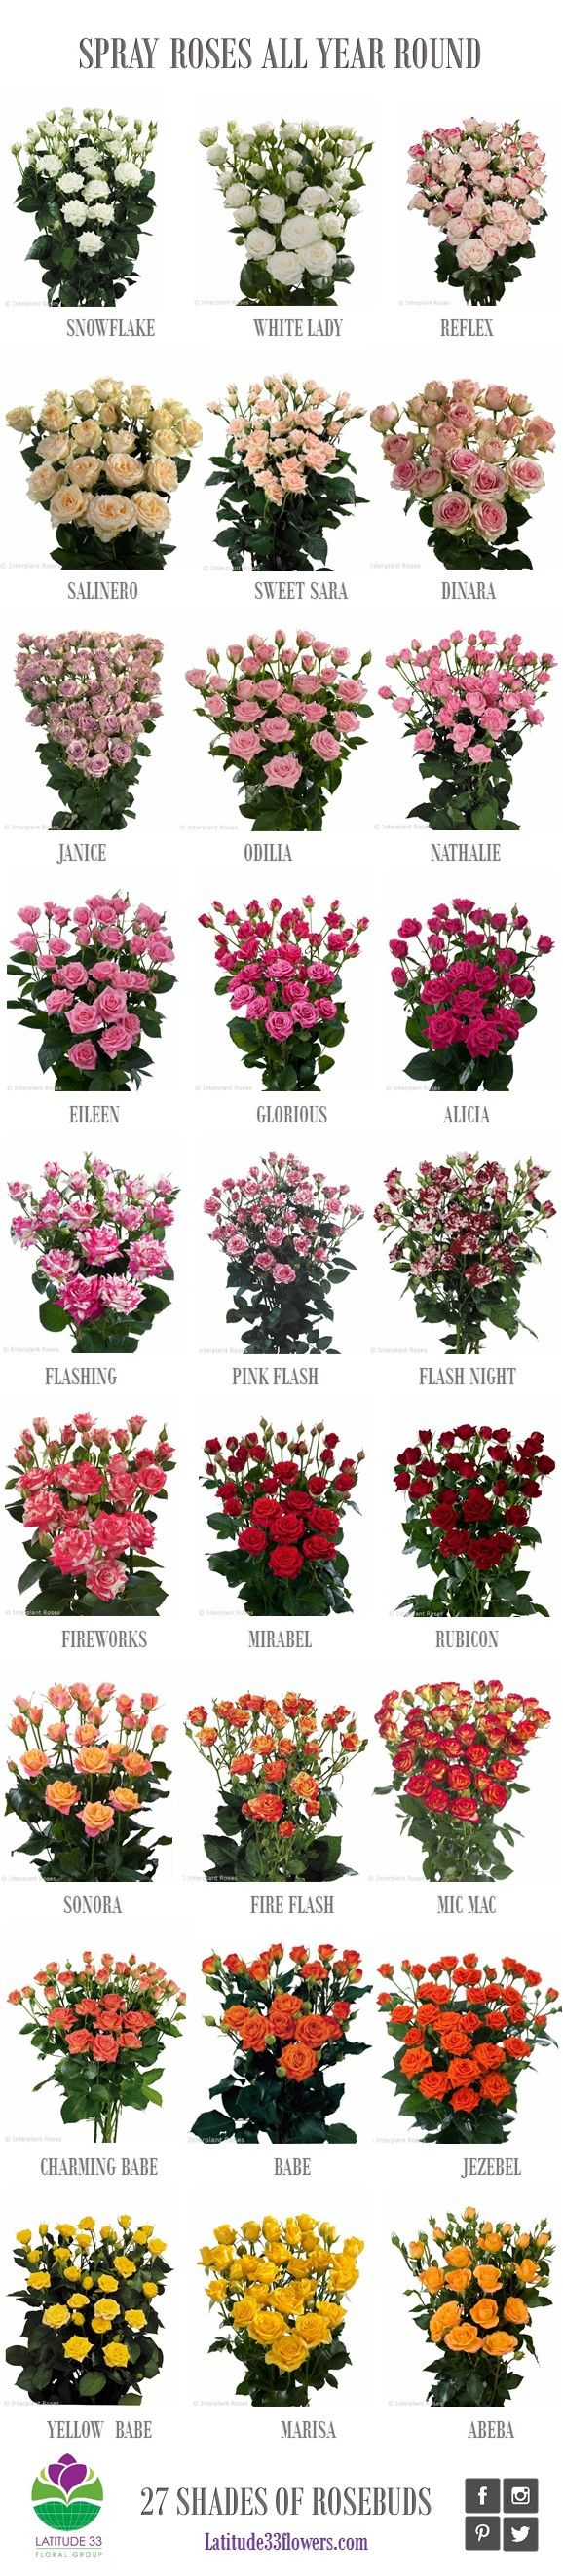 All our spray rose varieties, all year round <3                                                                                                                                                                                 More